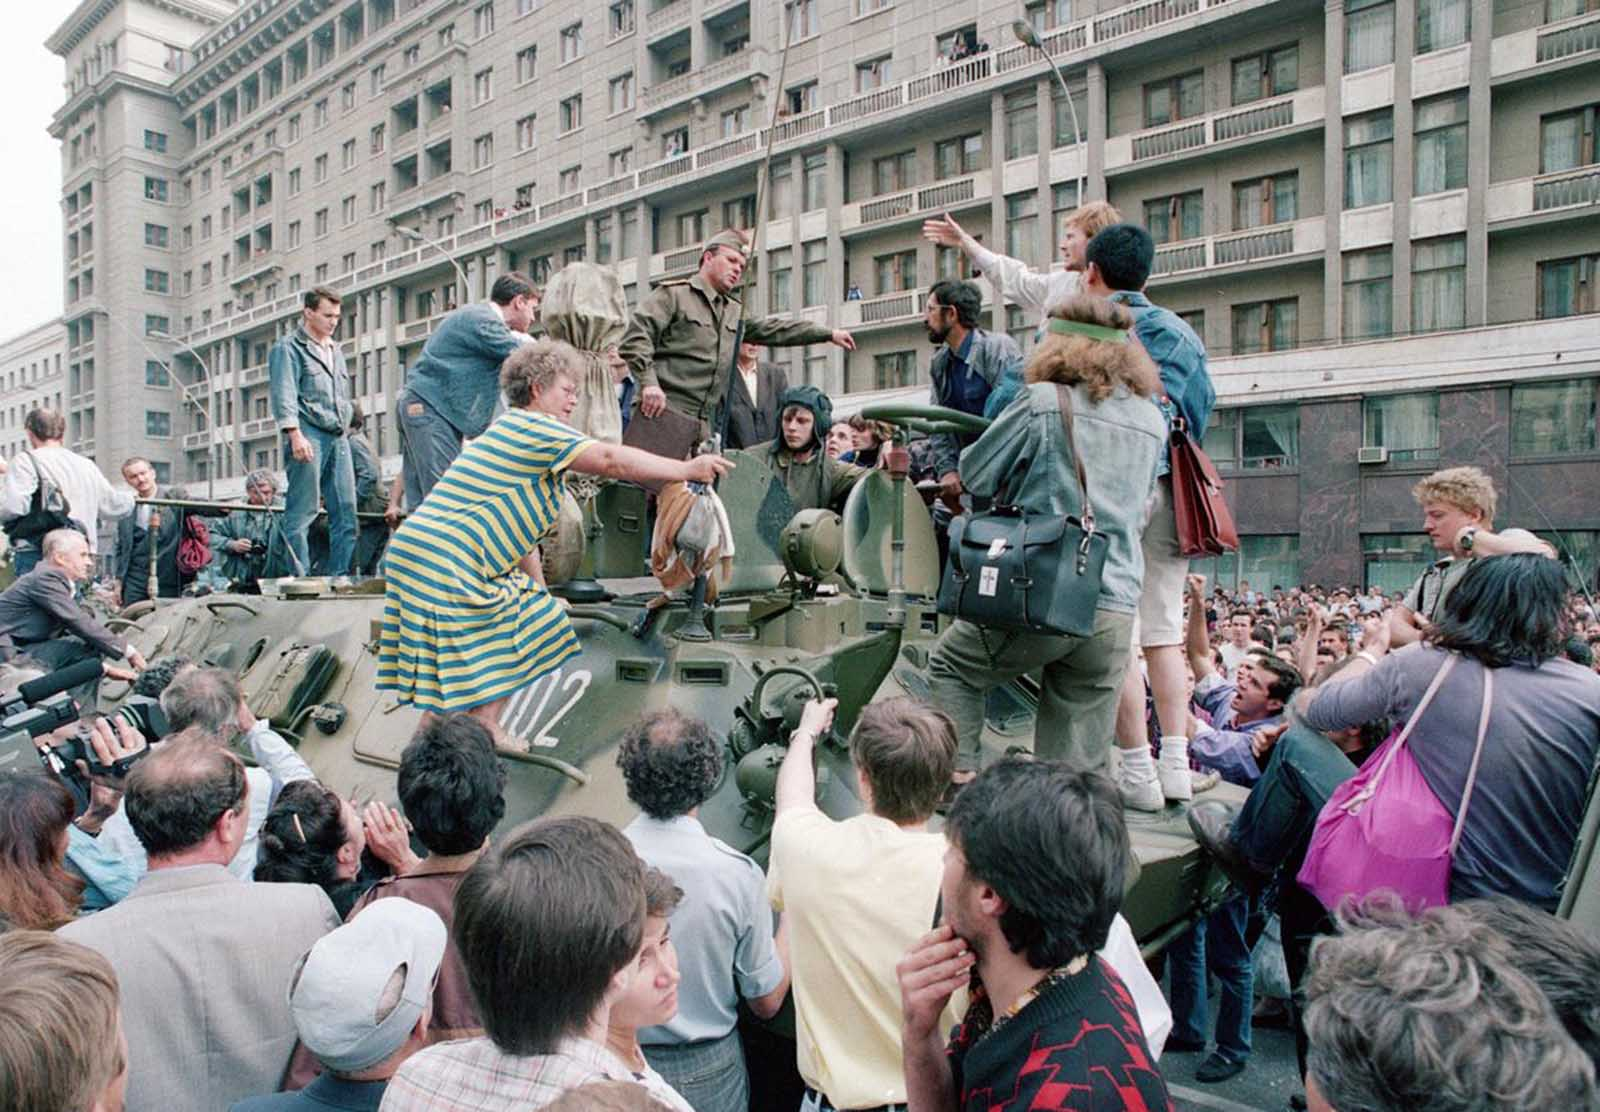 A crowd gathers around a personnel carrier as some people climb aboard the vehicle and try to block its advance near Red Square in downtown Moscow, on August 19, 1991. Military vehicles were on the streets of Moscow following the announcement that Soviet President Mikhail Gorbachev was replaced by Gennady I. Yanayev in a coup attempt by hard-line Communists.